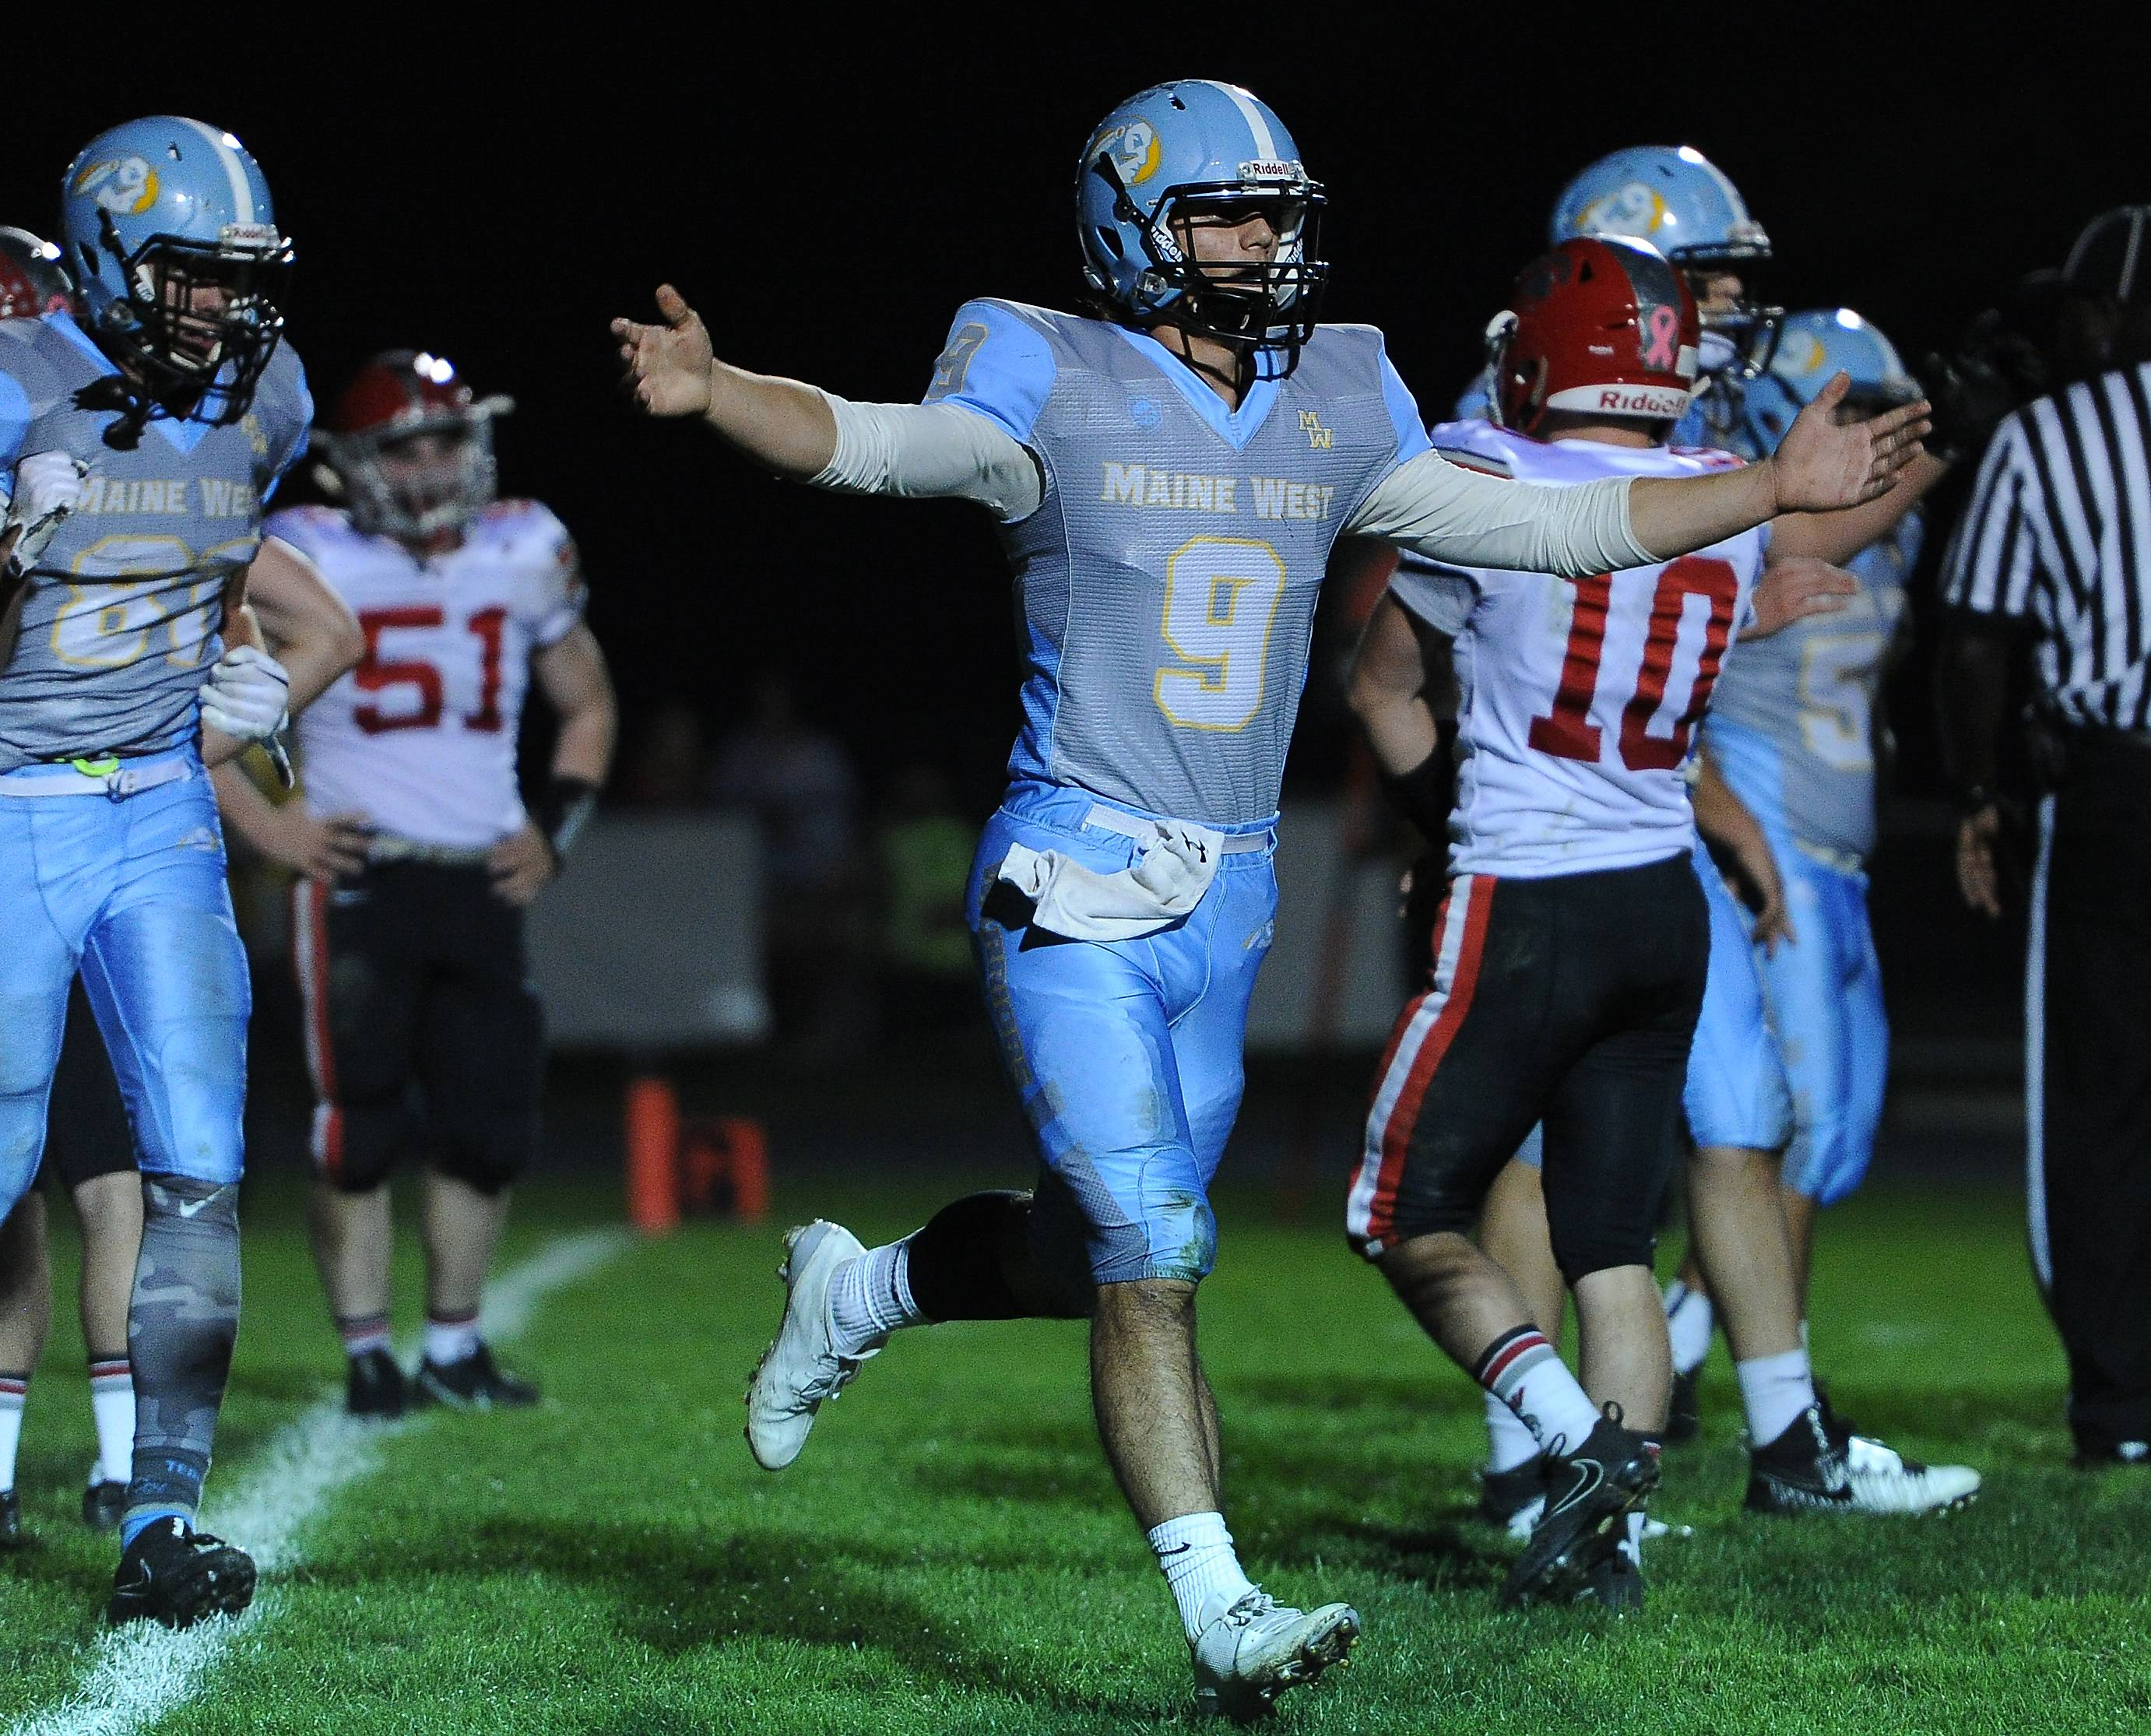 Maine West quarterback George Markakis celebrates after scoring on a keeper in Friday's 31-30 loss in OT against Deerfield.